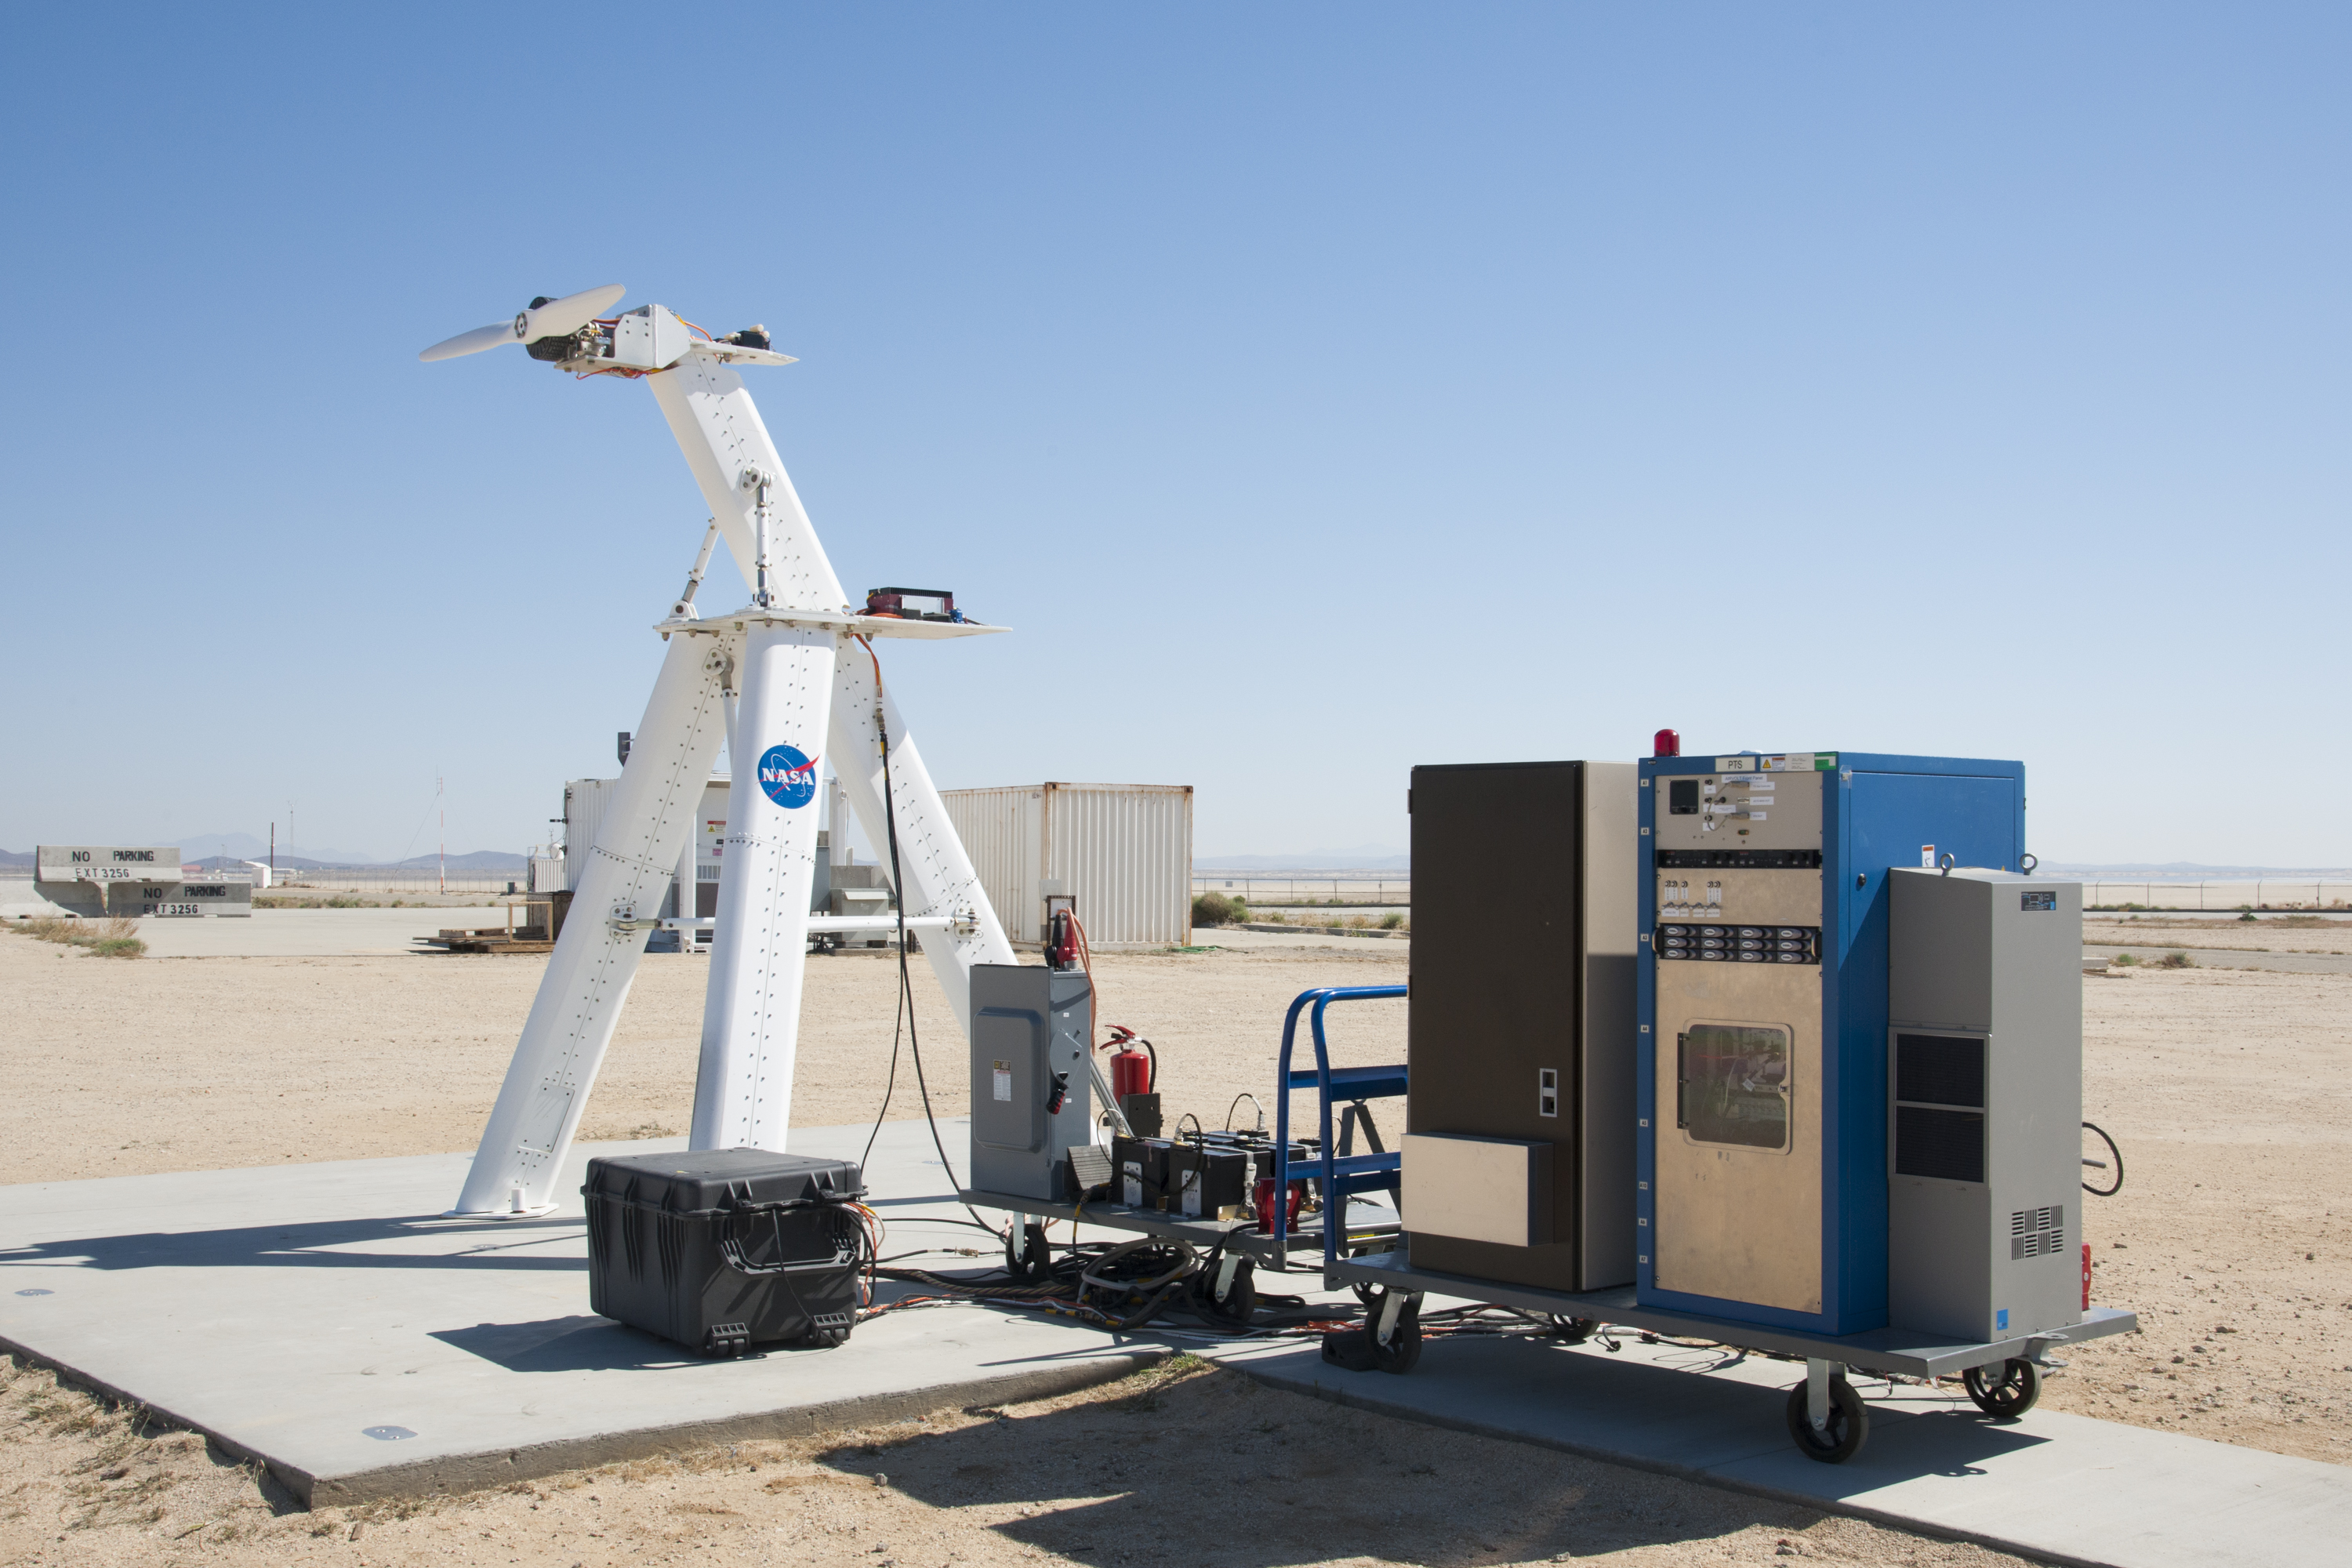 Electric Motor Test Stand Will Help With Future X-planes | NASA